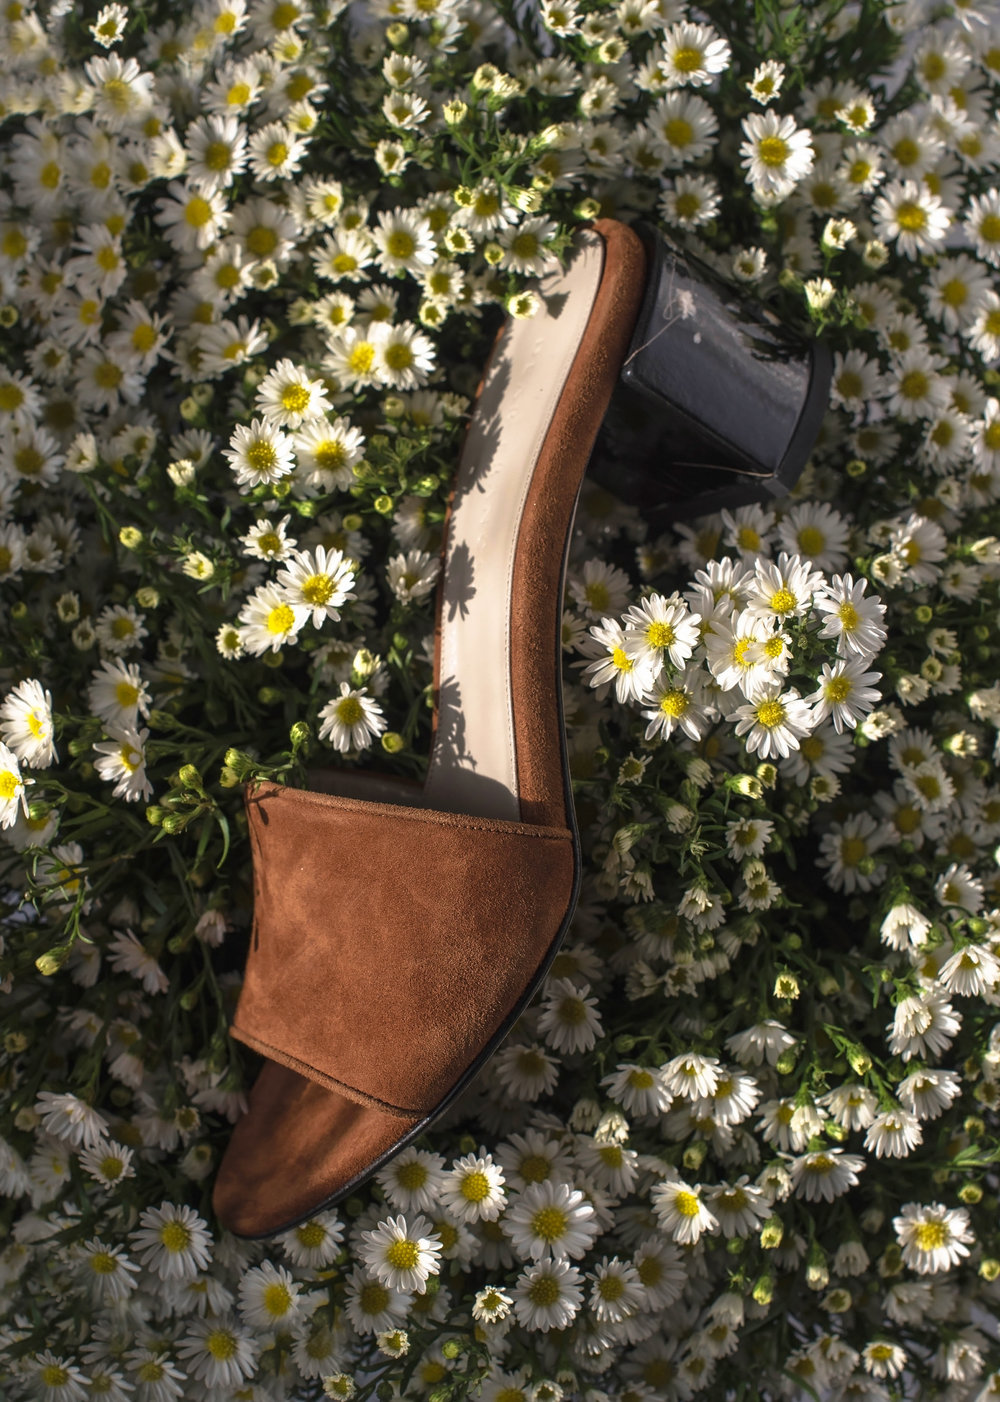 ROSE & IVY Journal Issue No. 07 Dear Frances Eva Mules